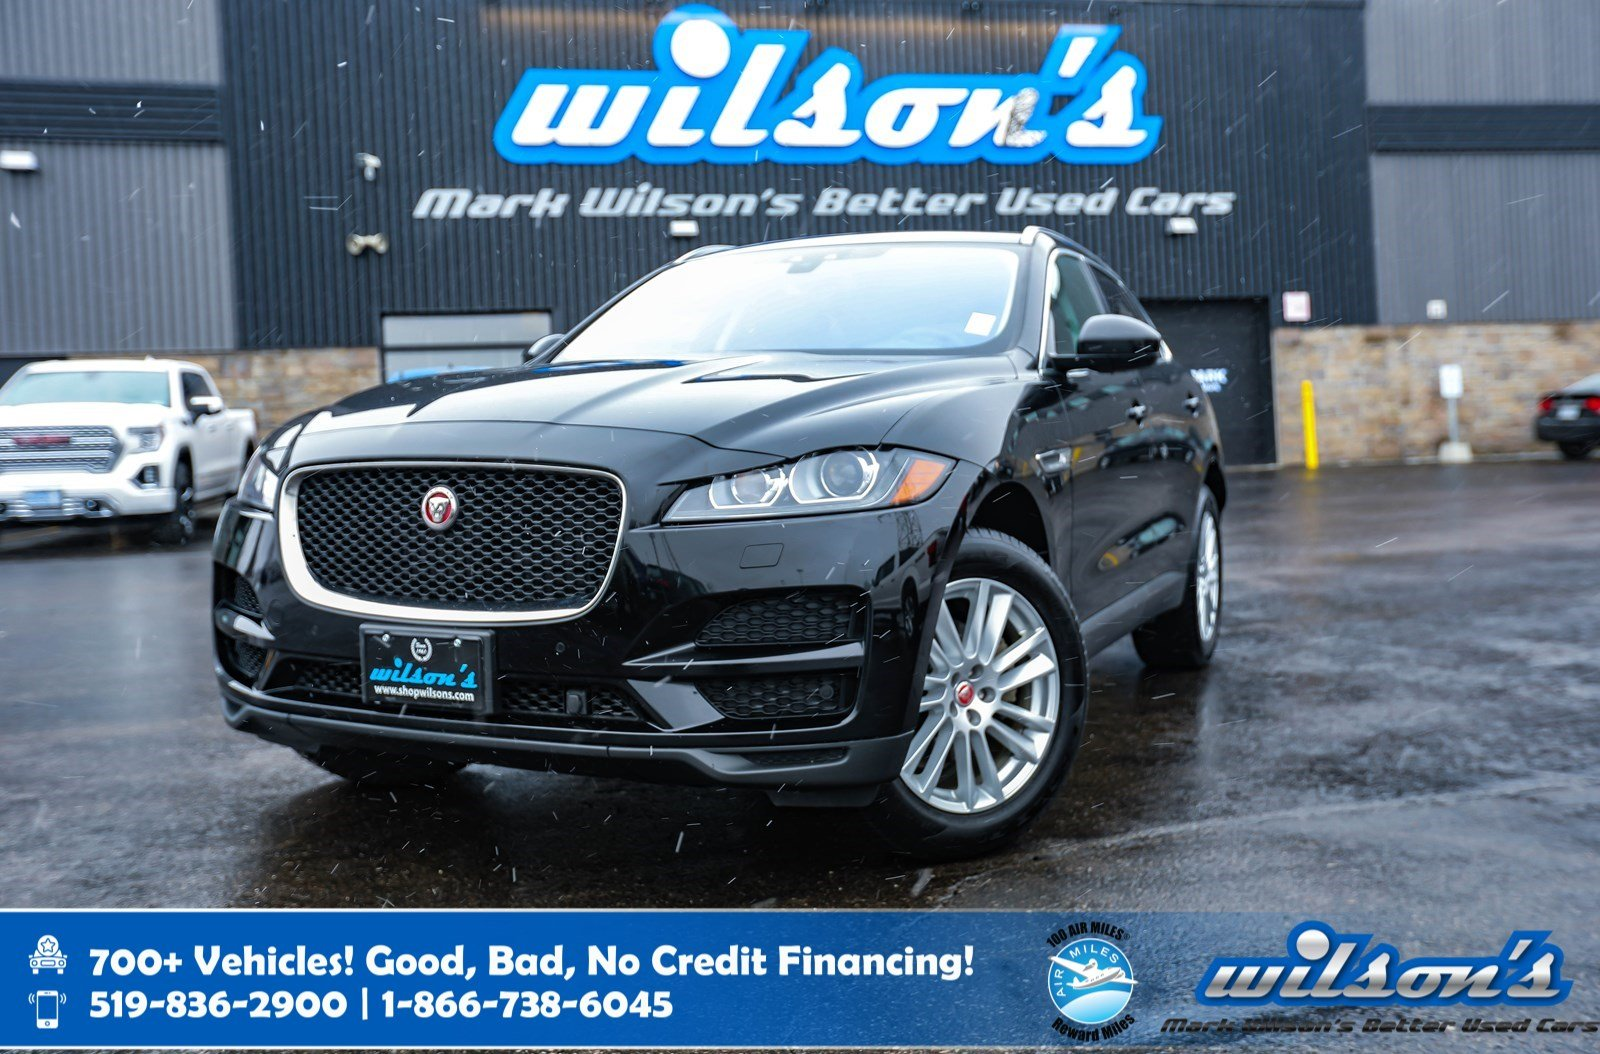 Certified Pre-Owned 2018 Jaguar F-PACE Prestige 25t AWD, Navigation, Panoramic Sunroof, Leather, Heated Steering, Power Liftgate